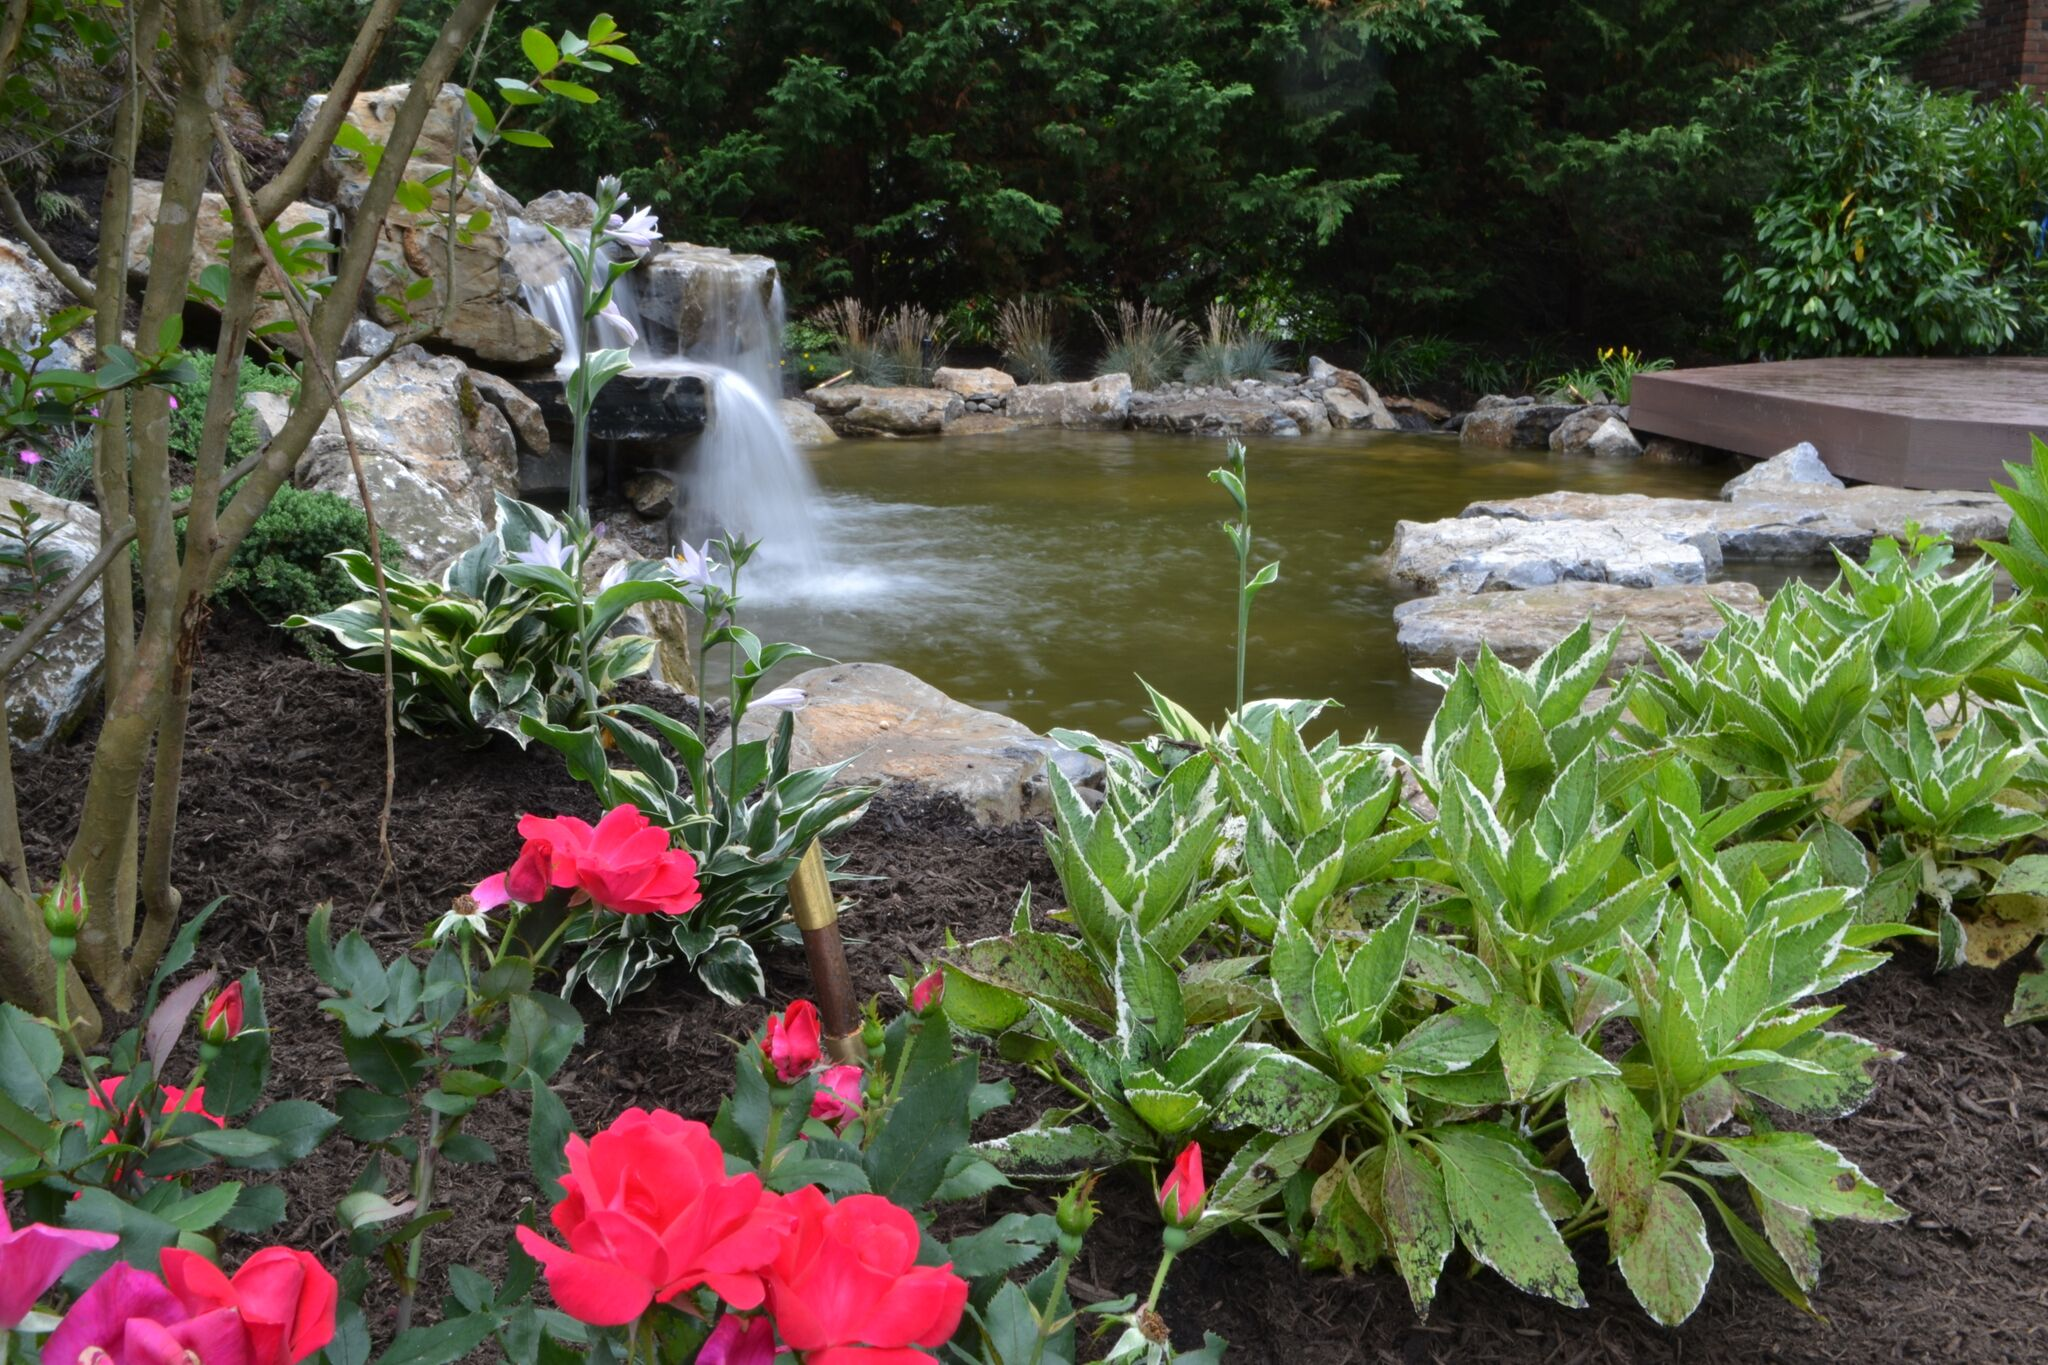 The benefits of aquatic plants and water garden landscaping for Plants around ponds